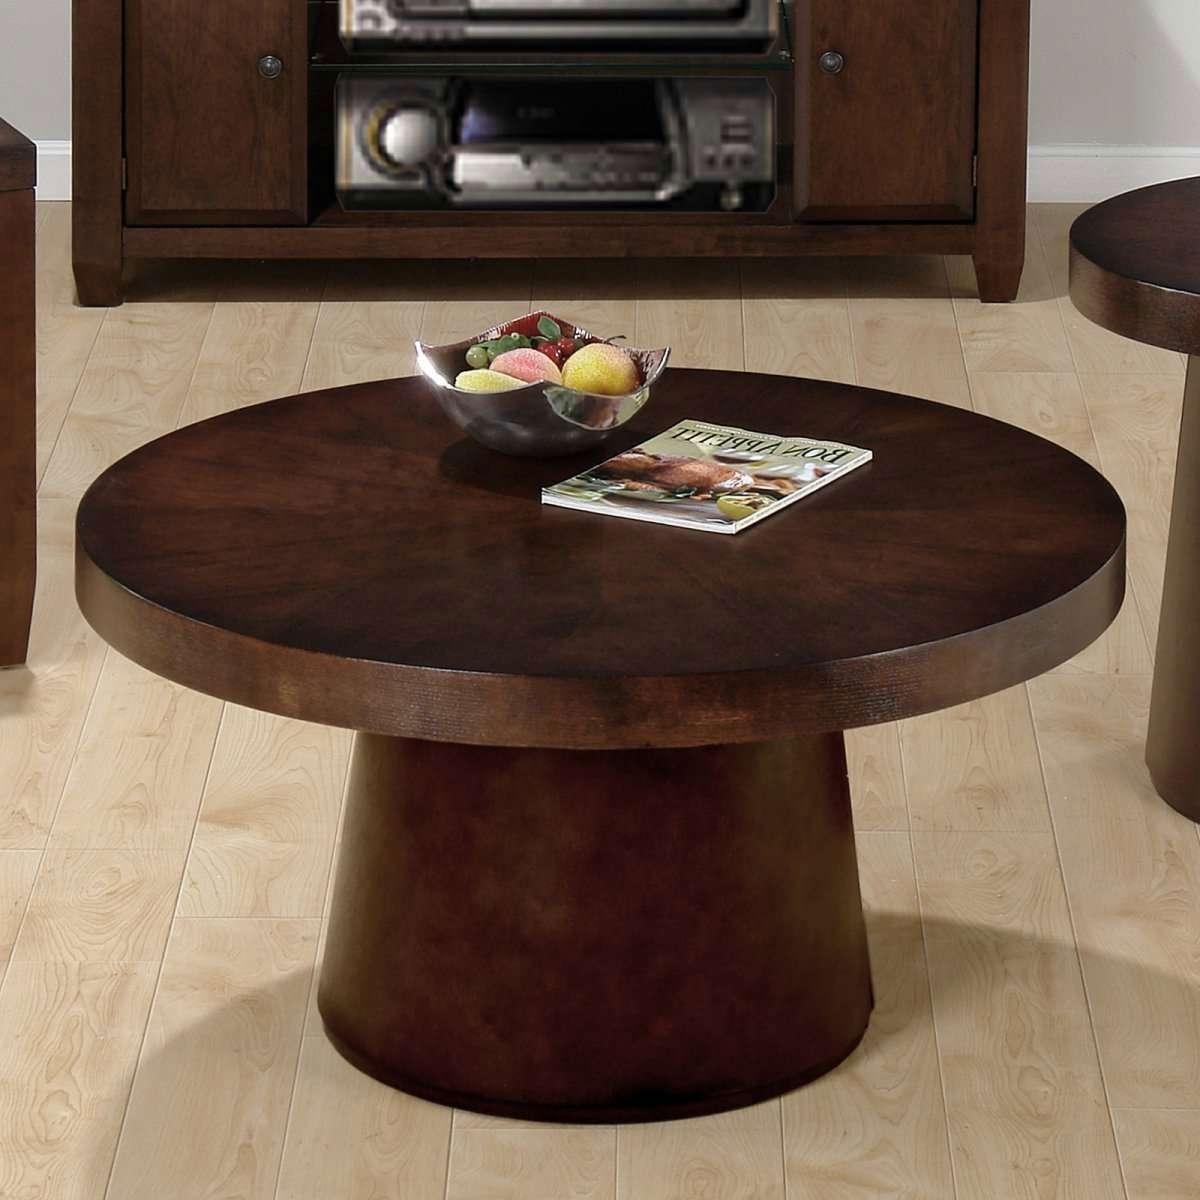 10 Best Small Round Coffee Tables For Round Coffee Tables Round For 2018 Small Circular Coffee Table (View 3 of 20)